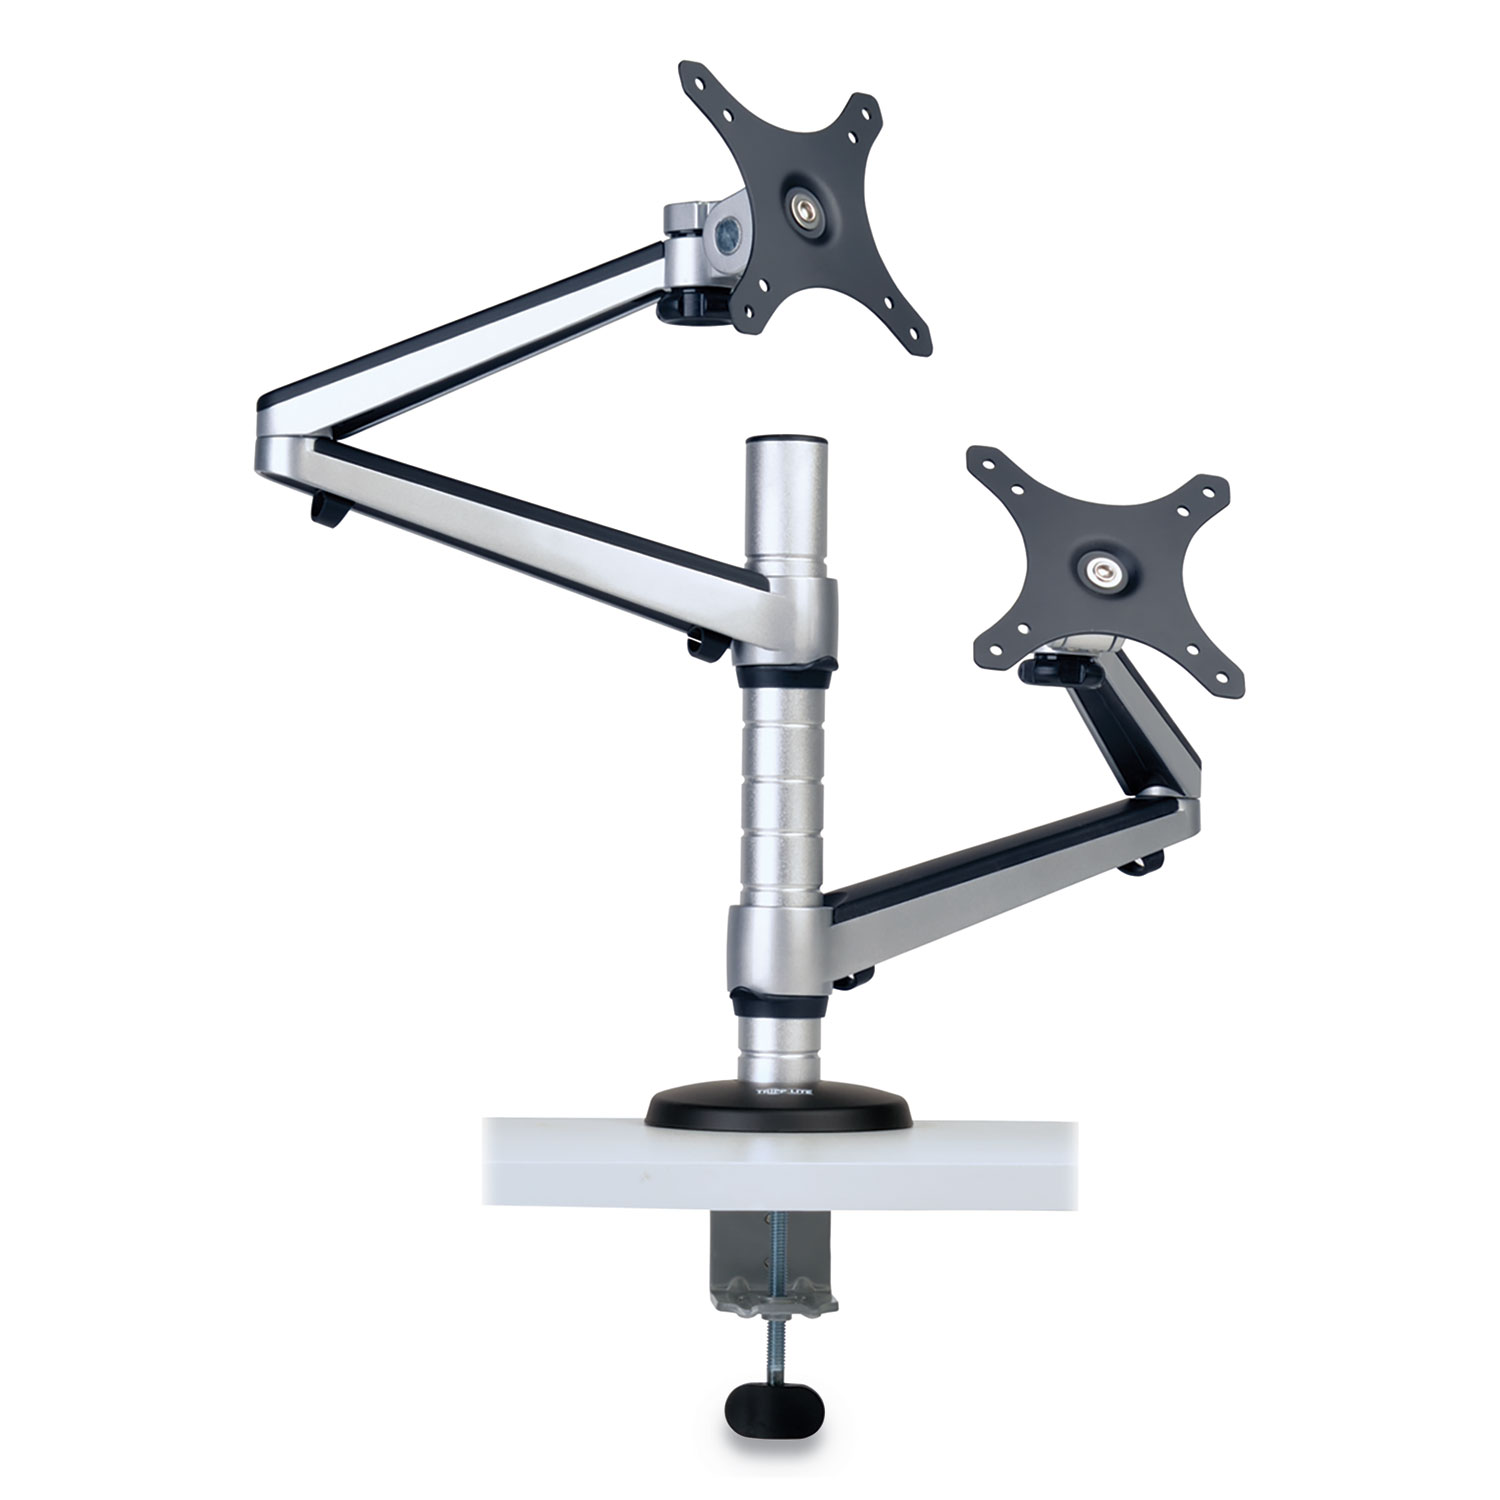 Dual Full Motion Flex Arm Desk Clamp, For 13″ To 27″ Monitors, Up To 22 Lbs/Arm